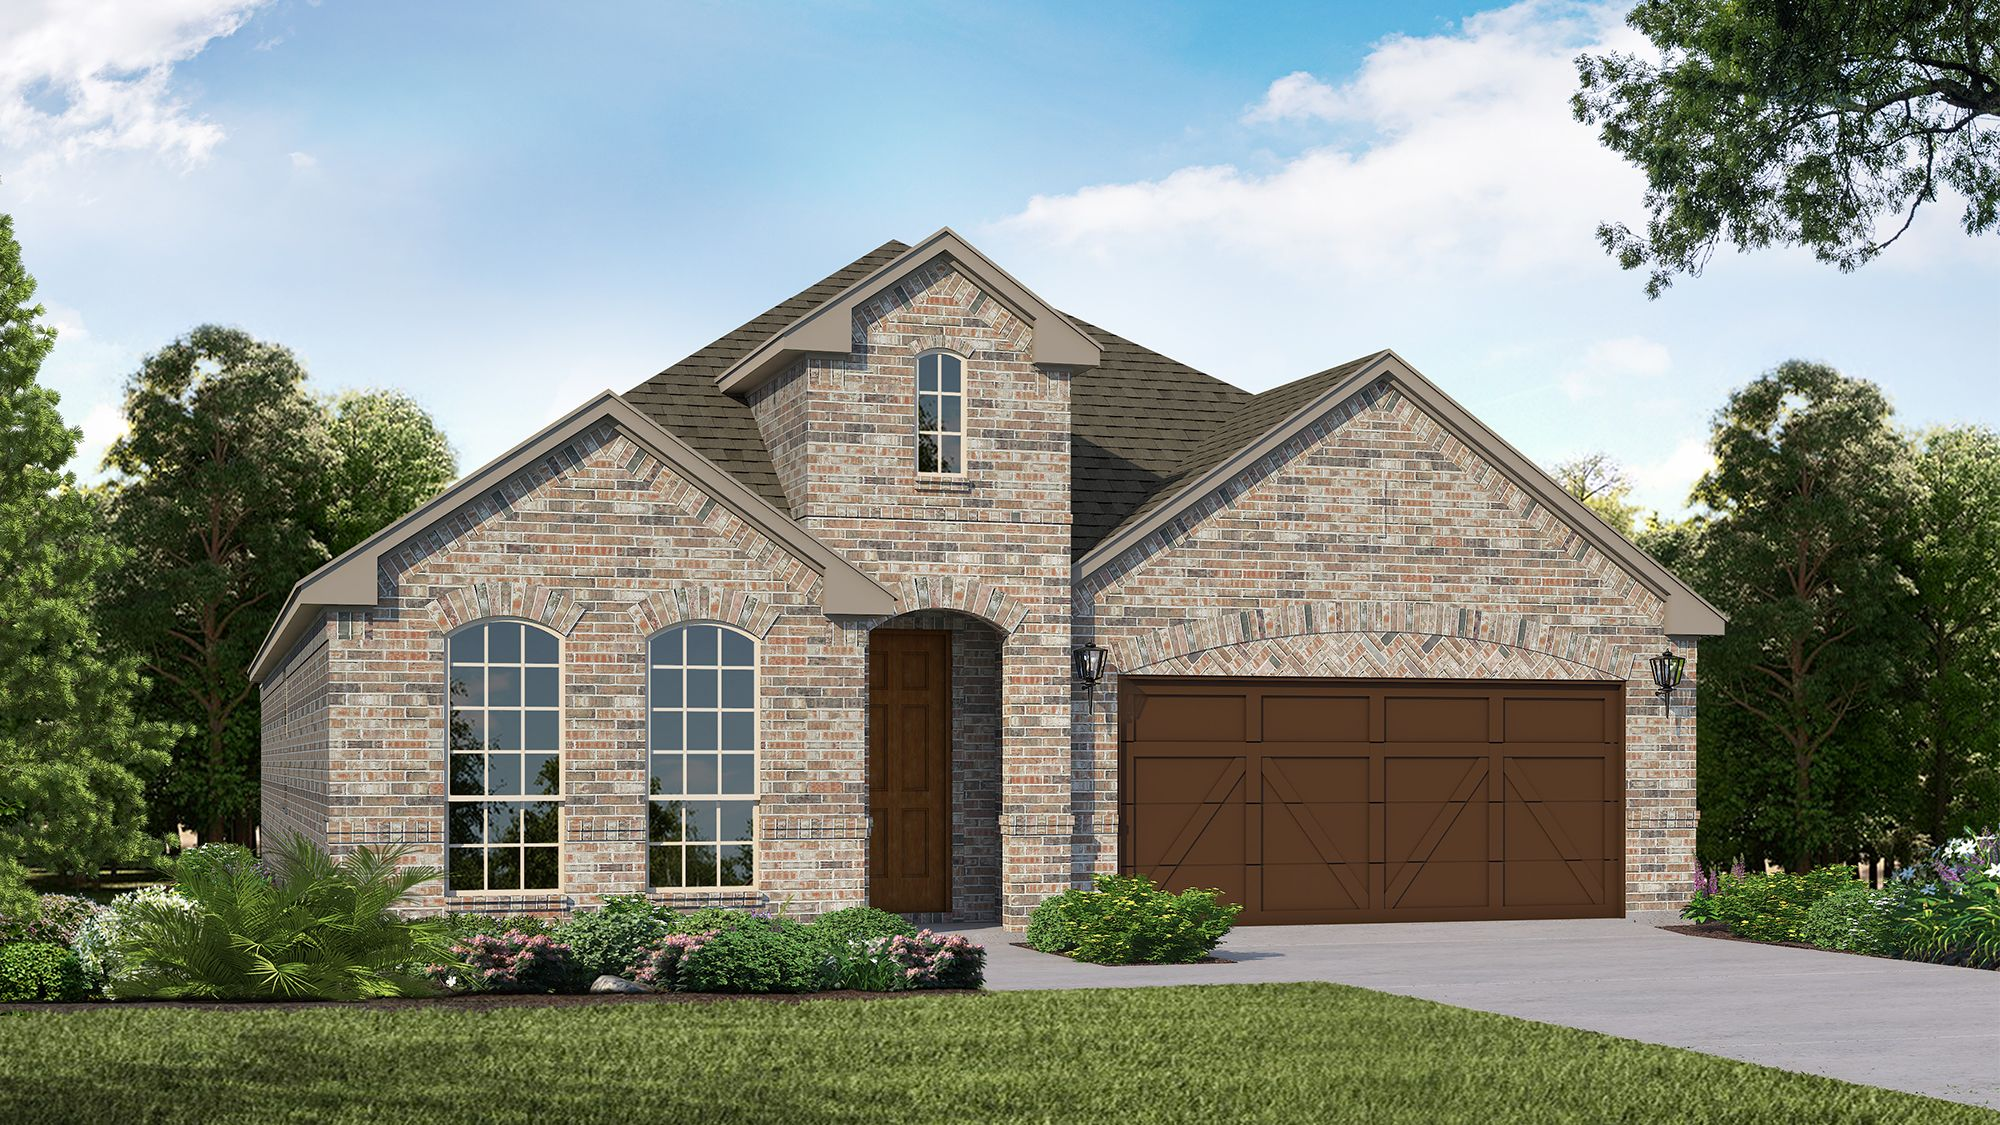 Plan 1519 Elevation A by American Legend Homes